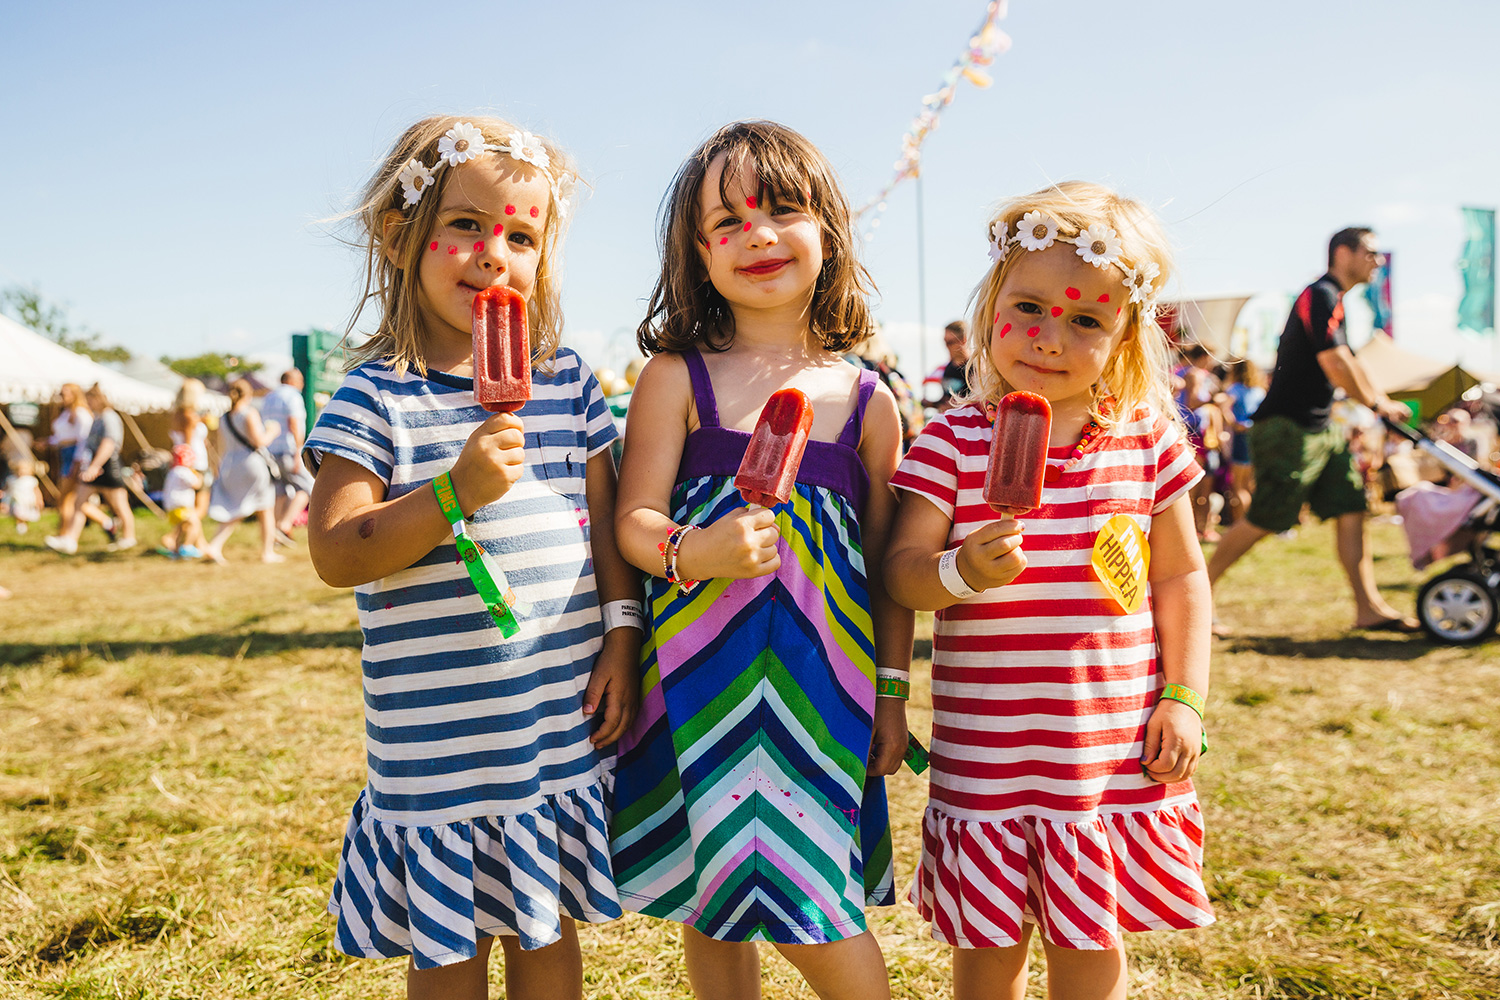 three girls with ice lollies